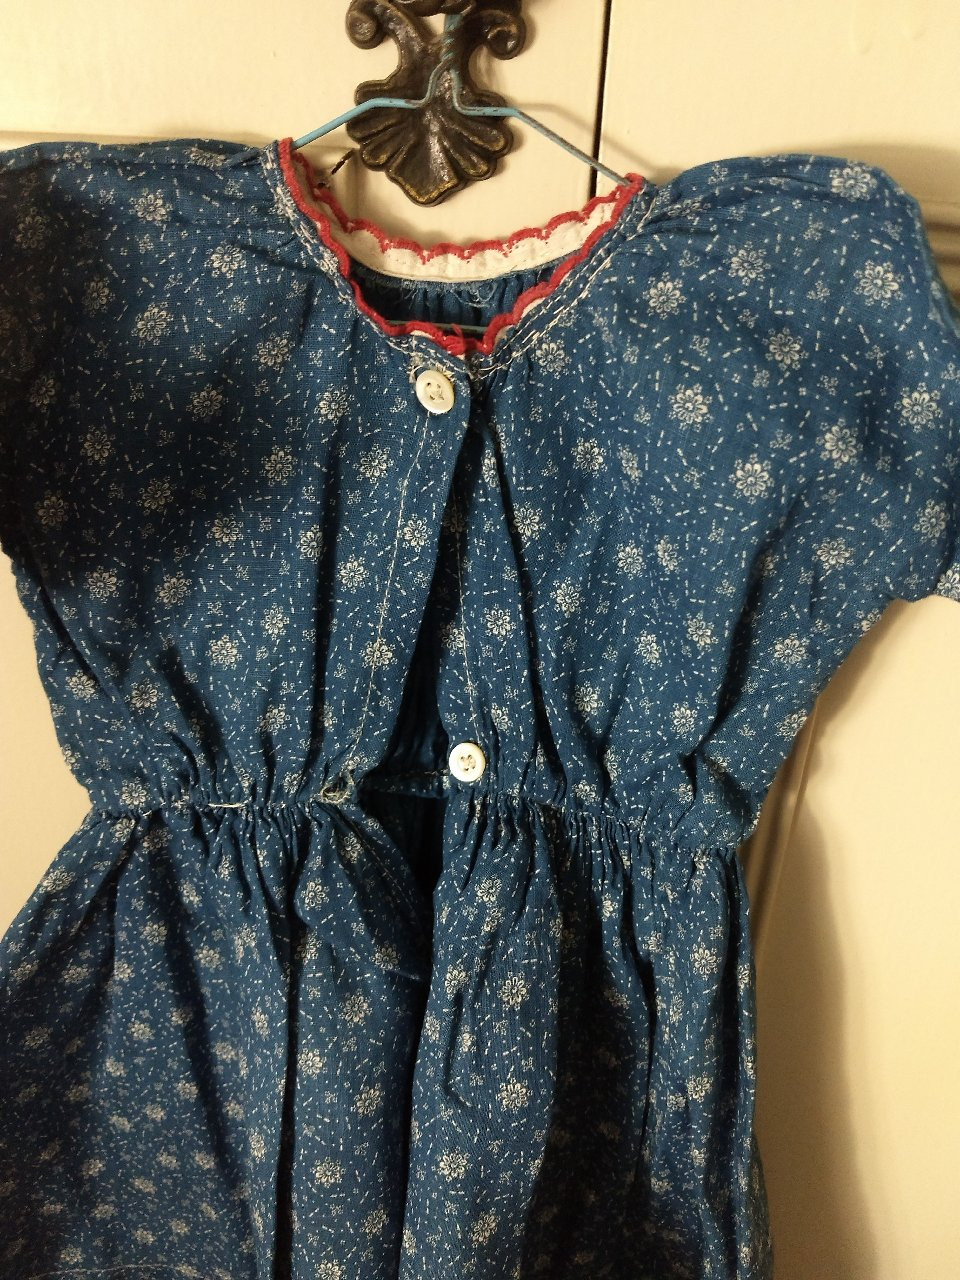 Farmhouse Country Blue Calico Doll Dress Red Trim 1900's Primitive Textile